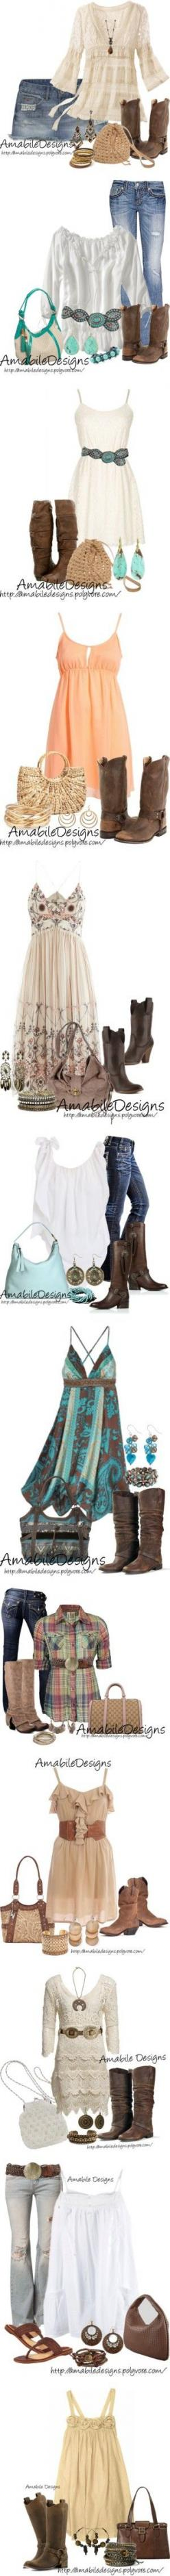 """Country Chic Look"" by amabiledesigns on Polyvore. Seriously...who am I? I'm not girly at all, but I like this.: Cowgirl Boots Outfit, Summer Country Concert Outfit, Country Outfit, Country Girl, Cowgirl Outfit, Boho Chic Outfit, Cowgirl Boots"